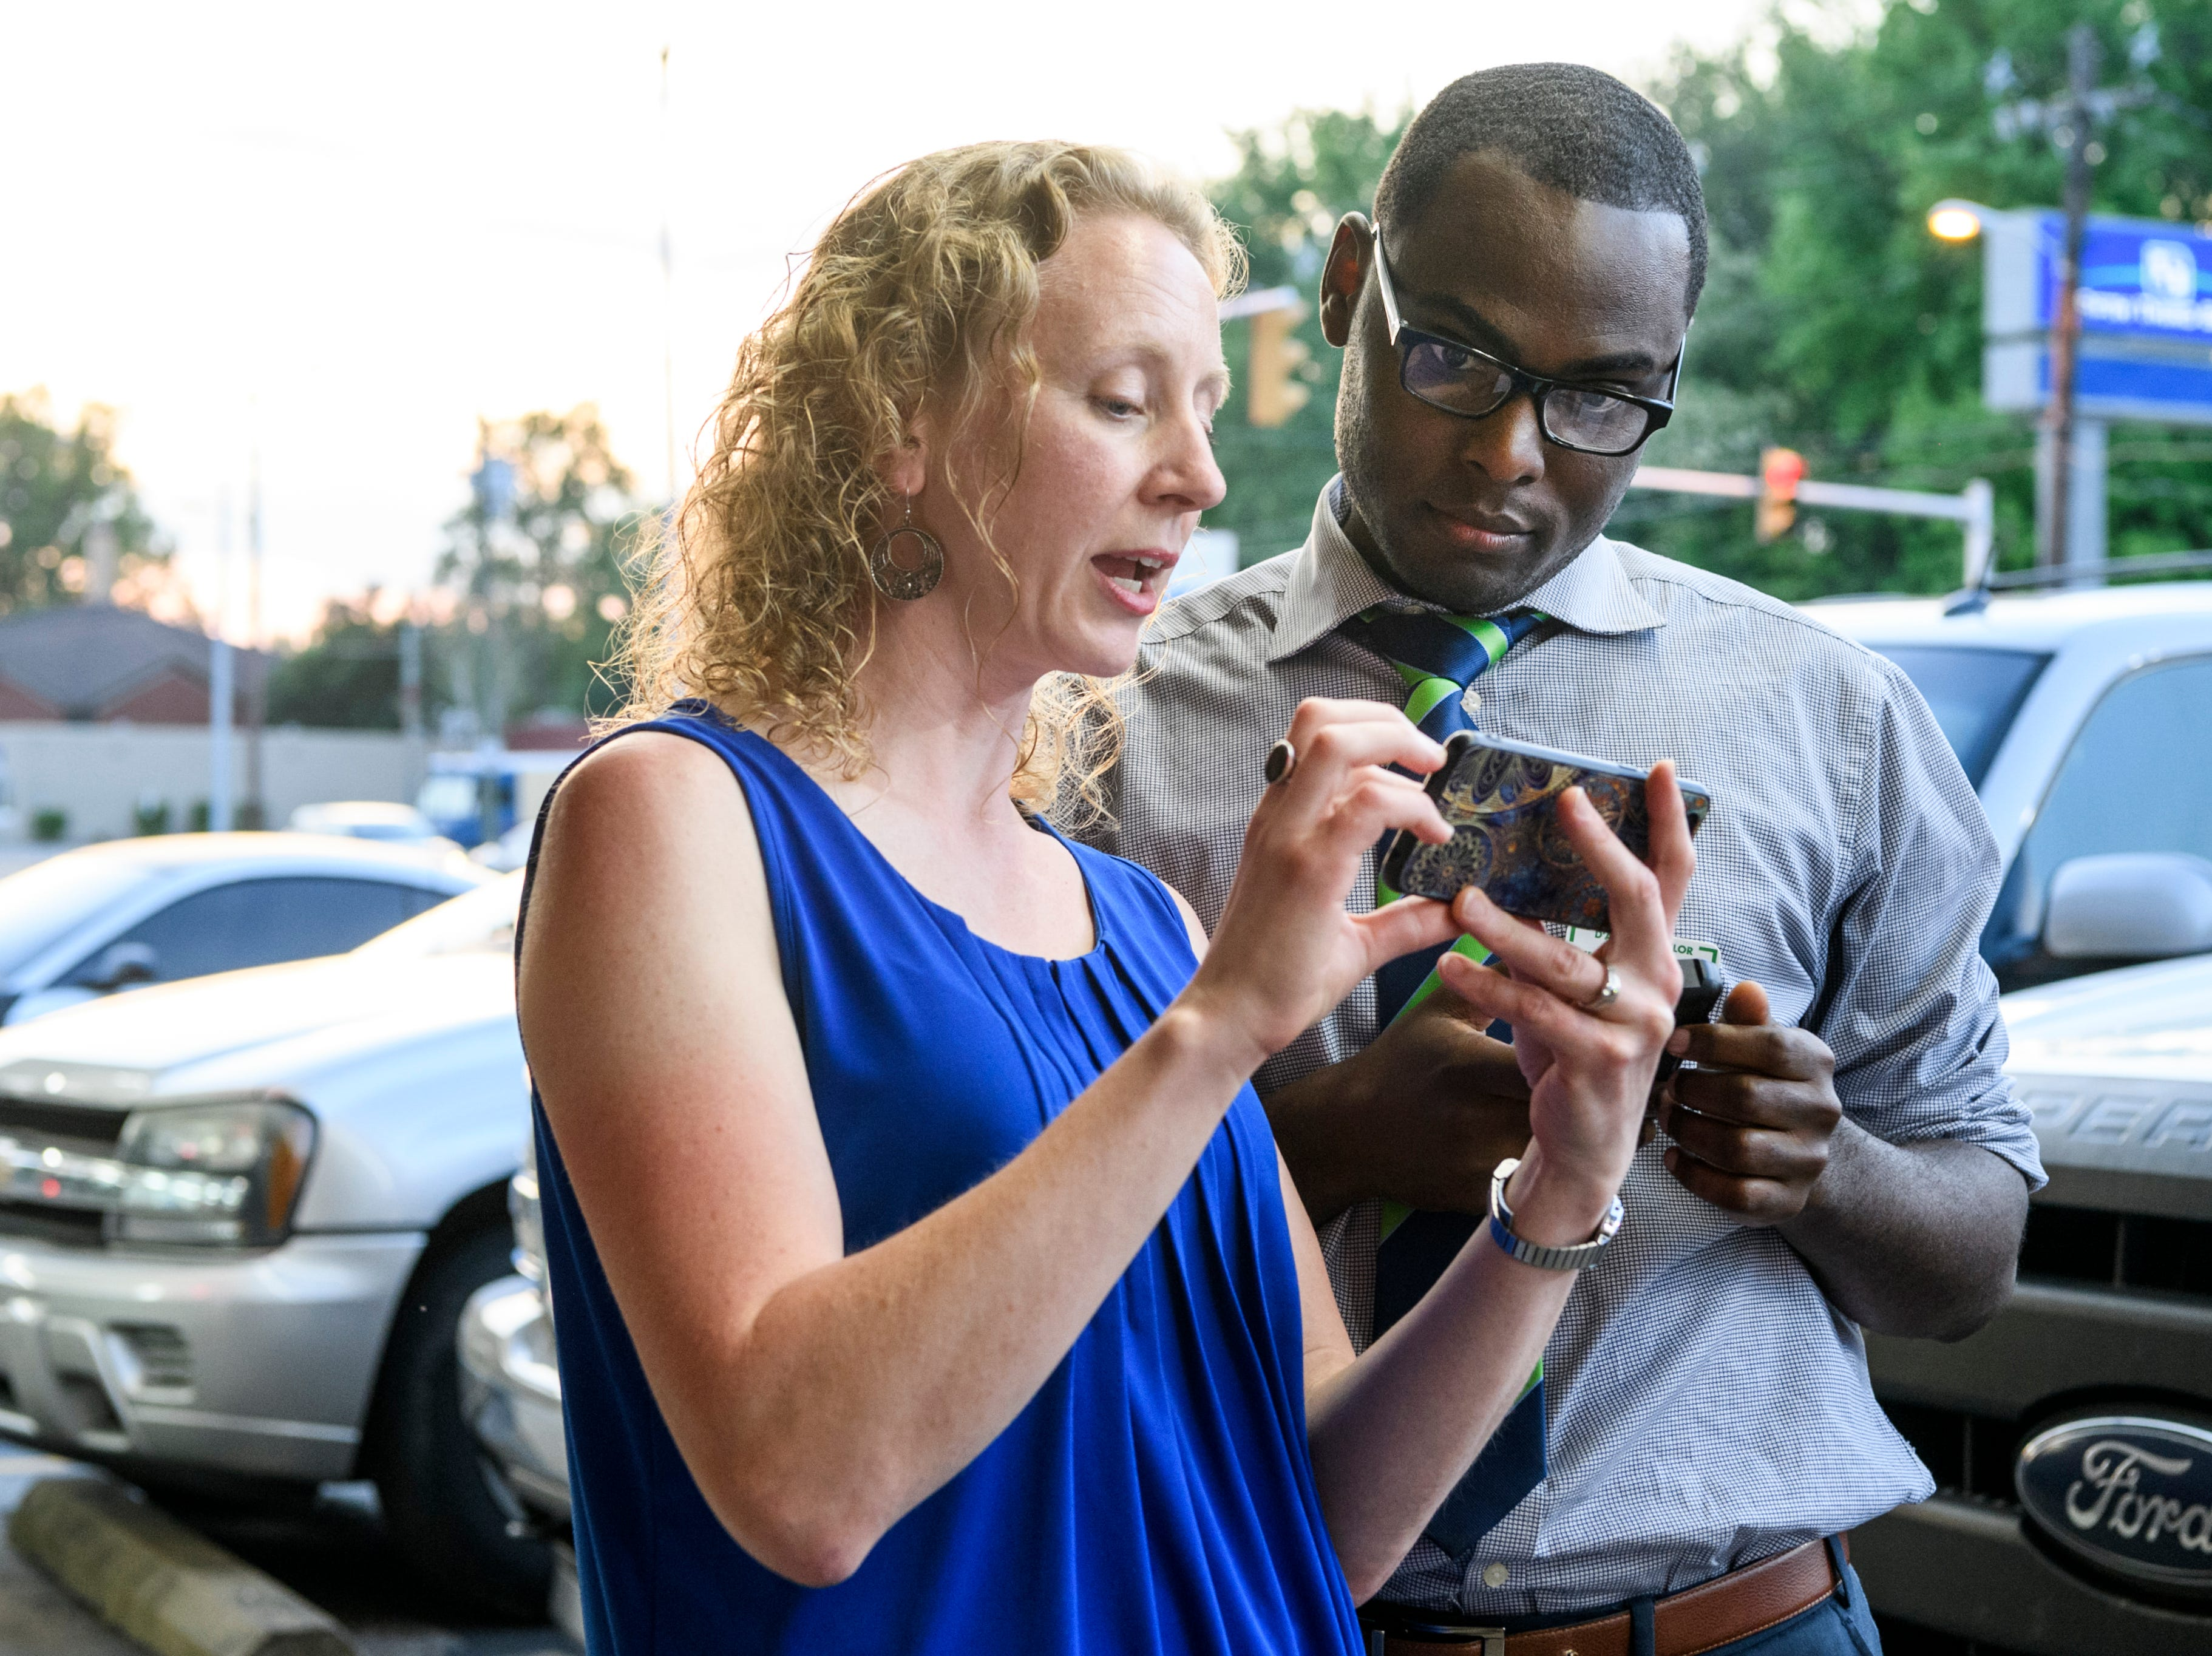 Gina Robinson Ungar, left, and D'Angelo Taylor, right, look over incoming election results during a democratic election watch party at Spudz-N-Stuff on Washington Avenue in Evansville, Ind., Tuesday, May 7, 2019. Robinson Ungar won one of three democratic at-large city council spots and Taylor lost a contentious second ward city council race to Missy Mosby (not pictured).